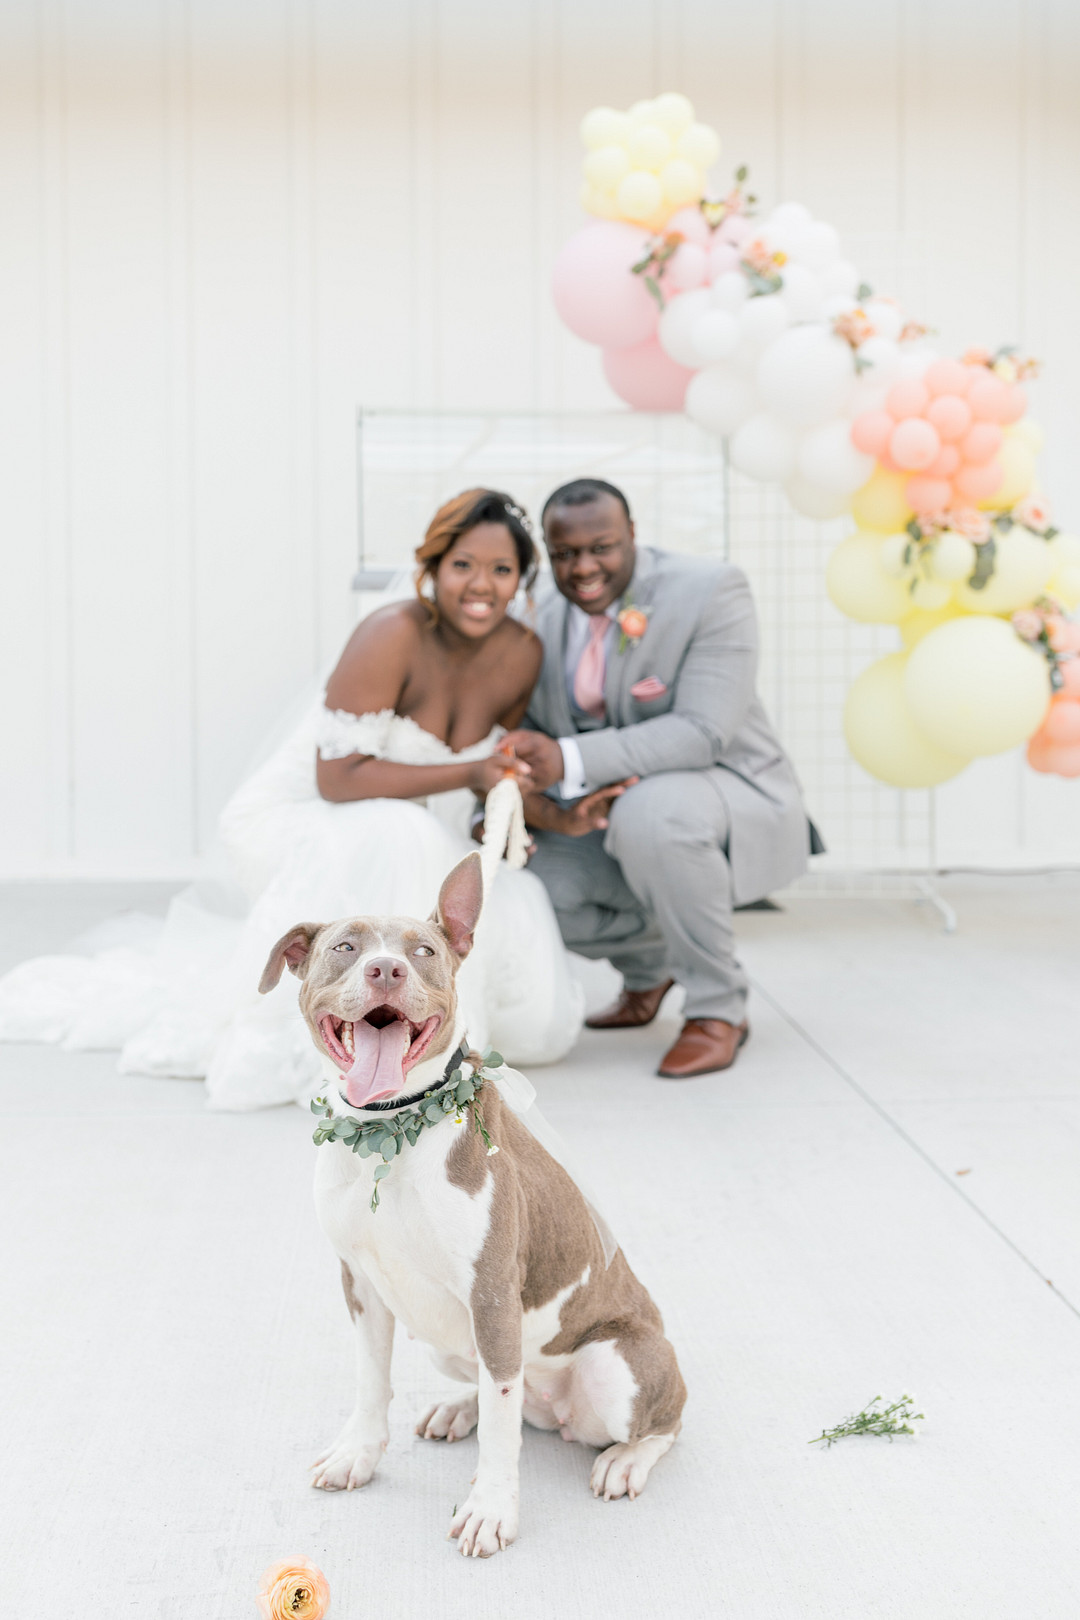 PEACH PERFECT WEDDING IDEAS FOR THE END OF SUMMER